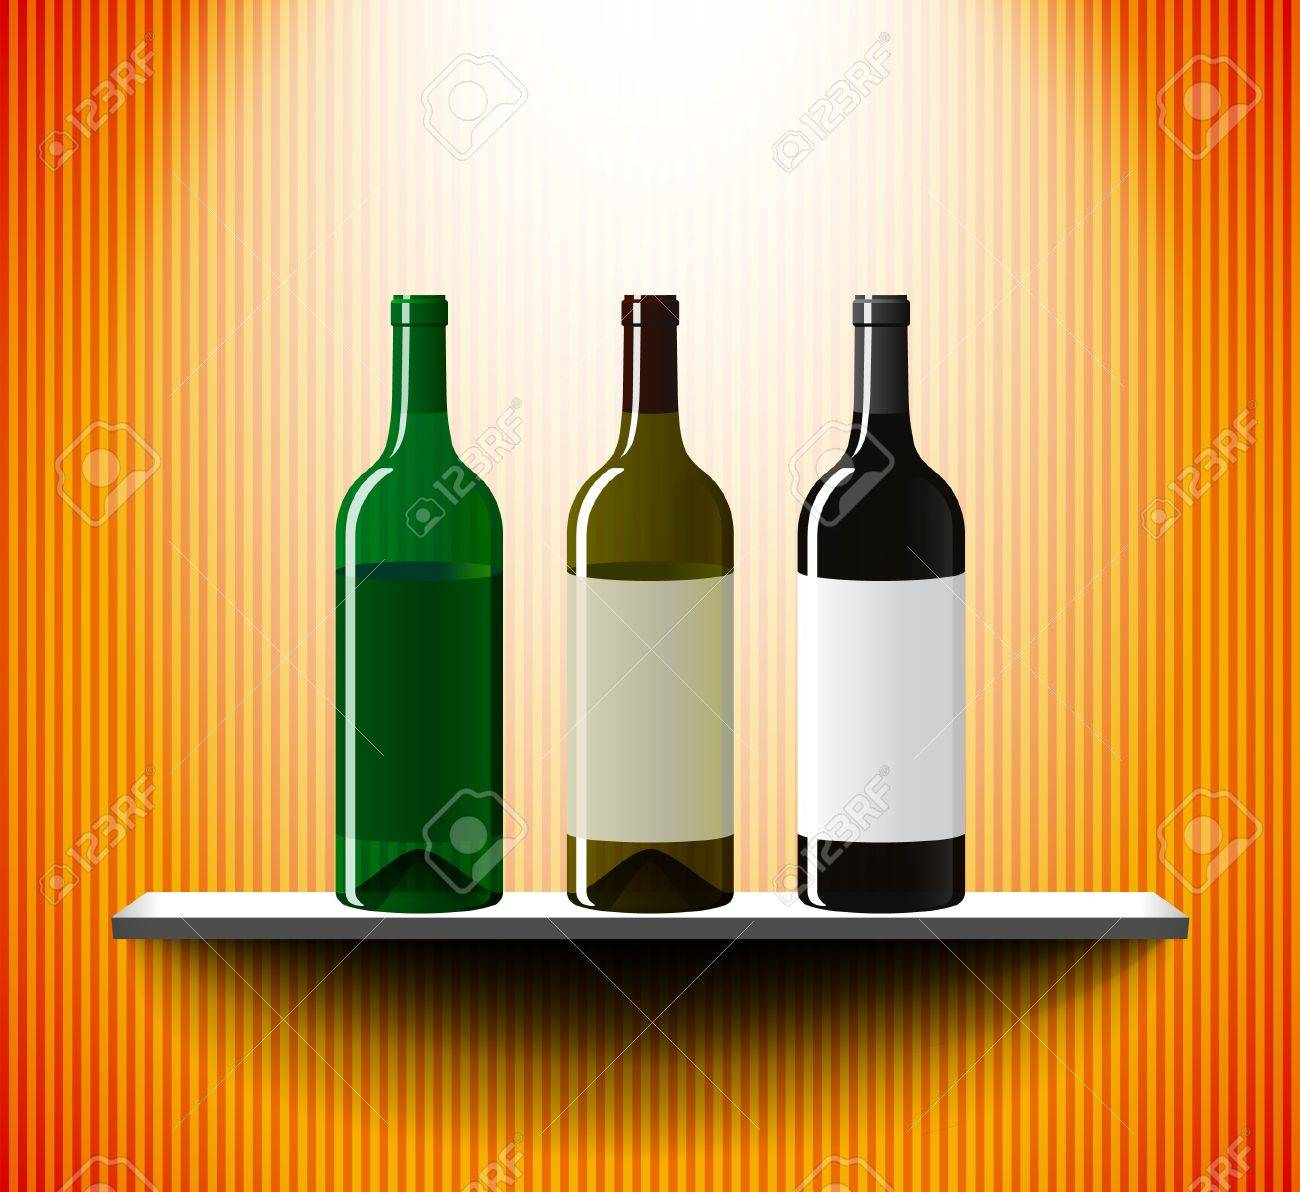 Wine bottles on a lightened shelf Stock Vector - 11236851